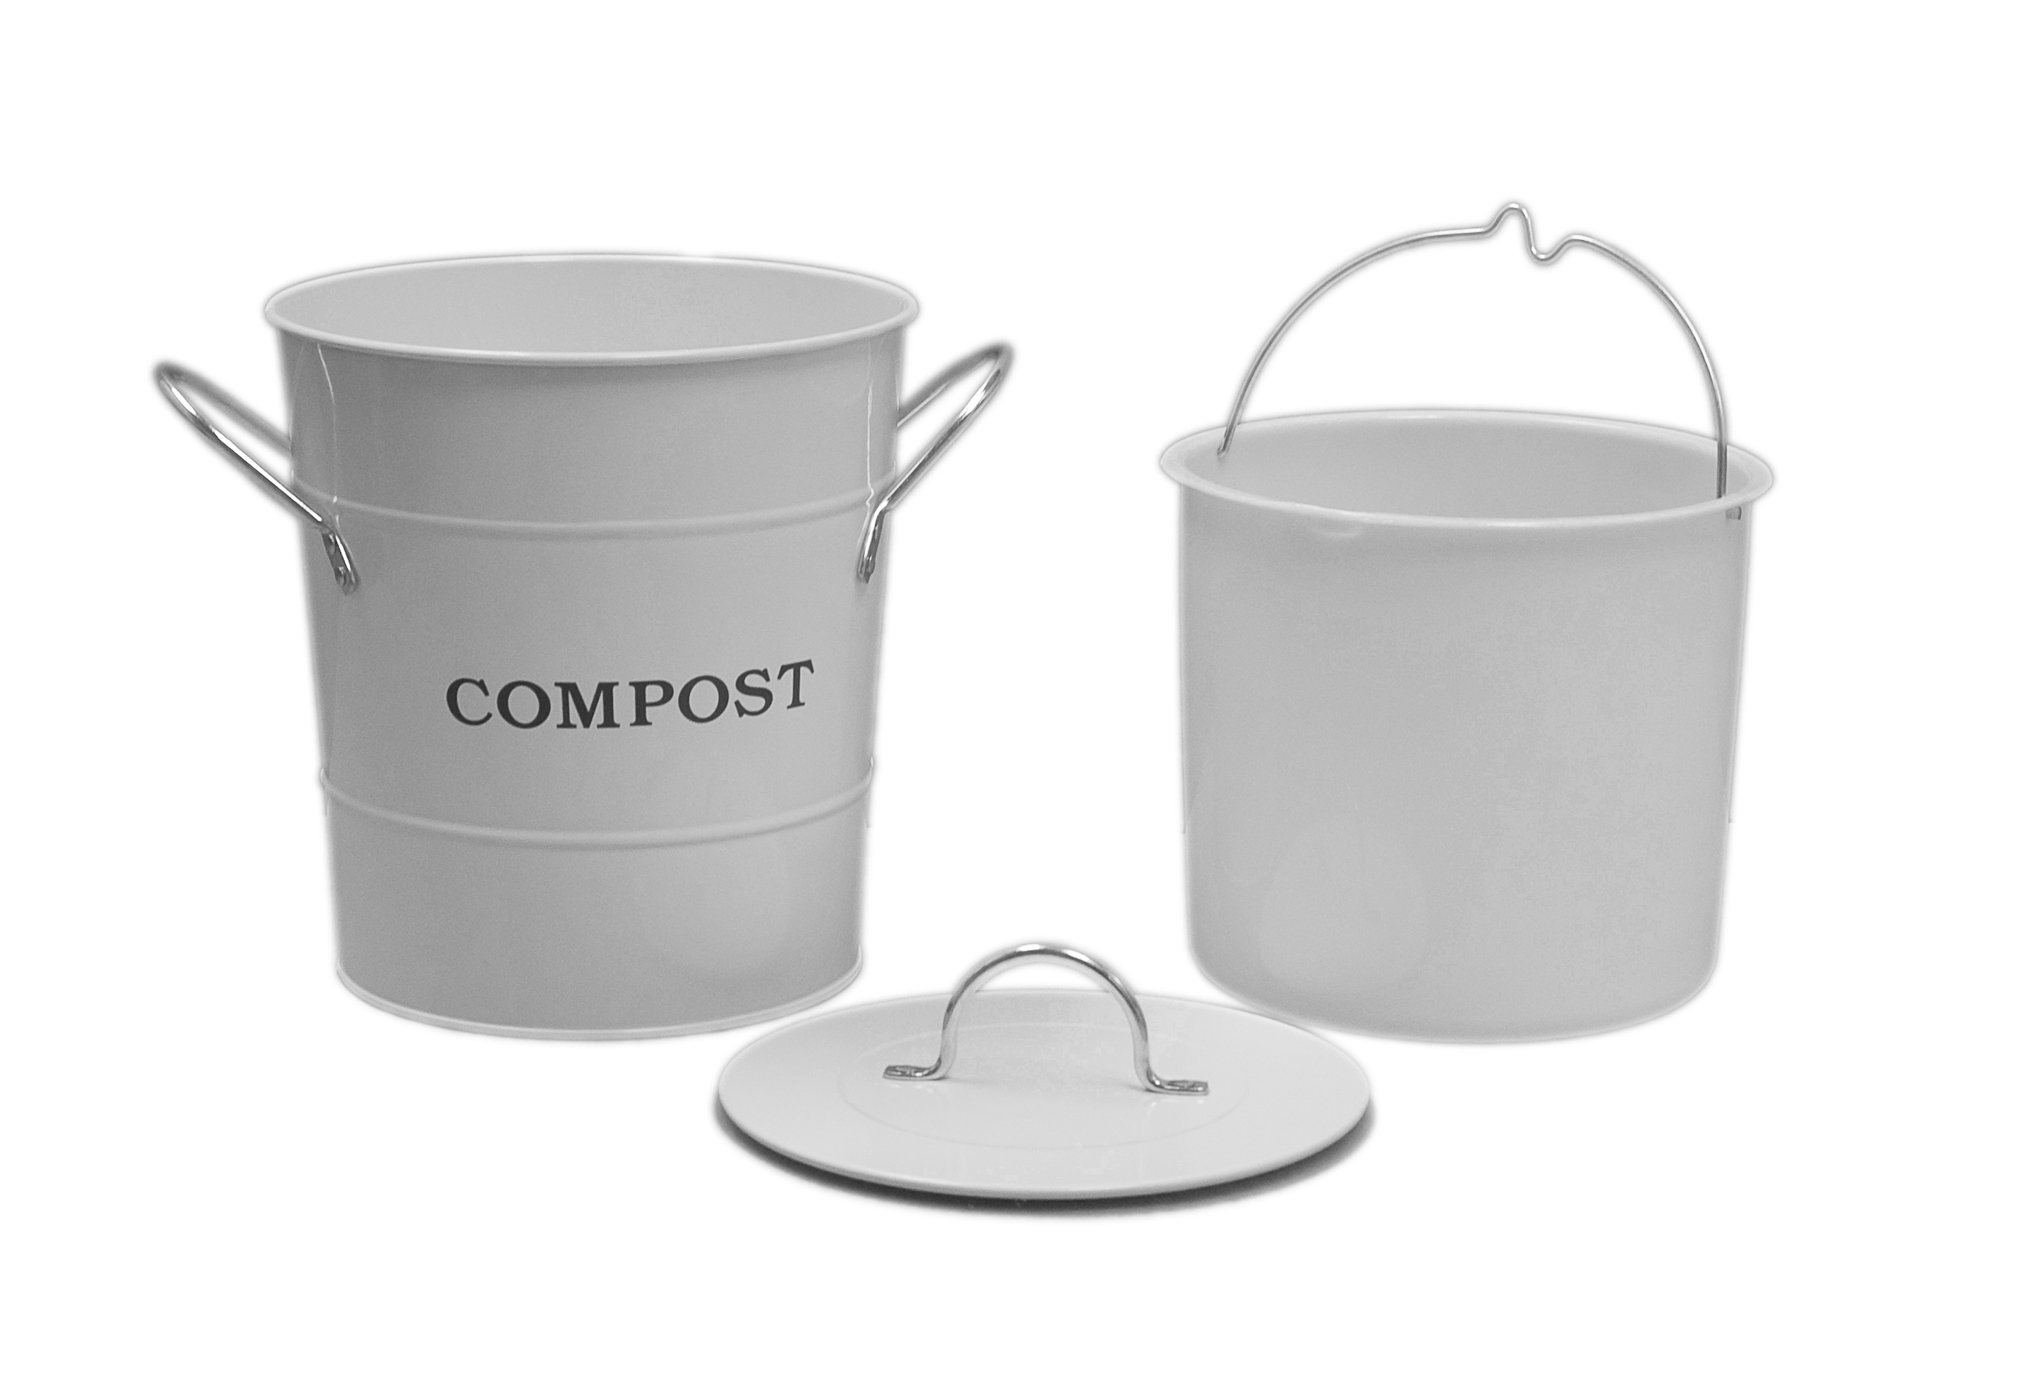 Exaco Trading Company CPBW01 2-In-1 Indoor Compost Bucket, 1 gallon, White